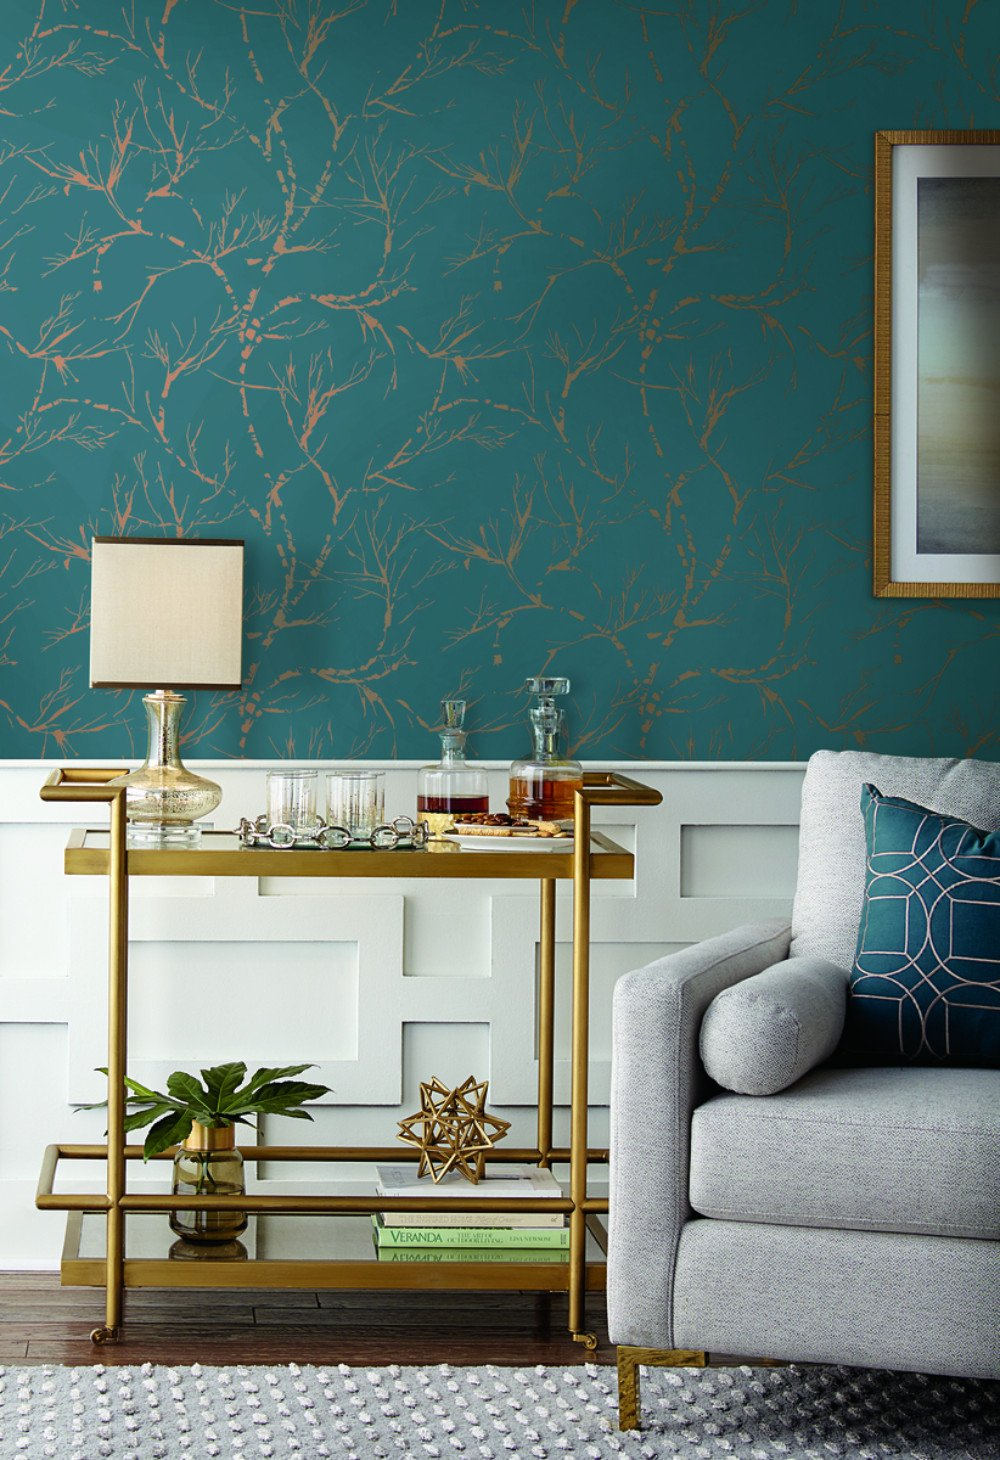 White Pine Wallpaper in Teal from Masterworks Collection by Ronald 1000x1460